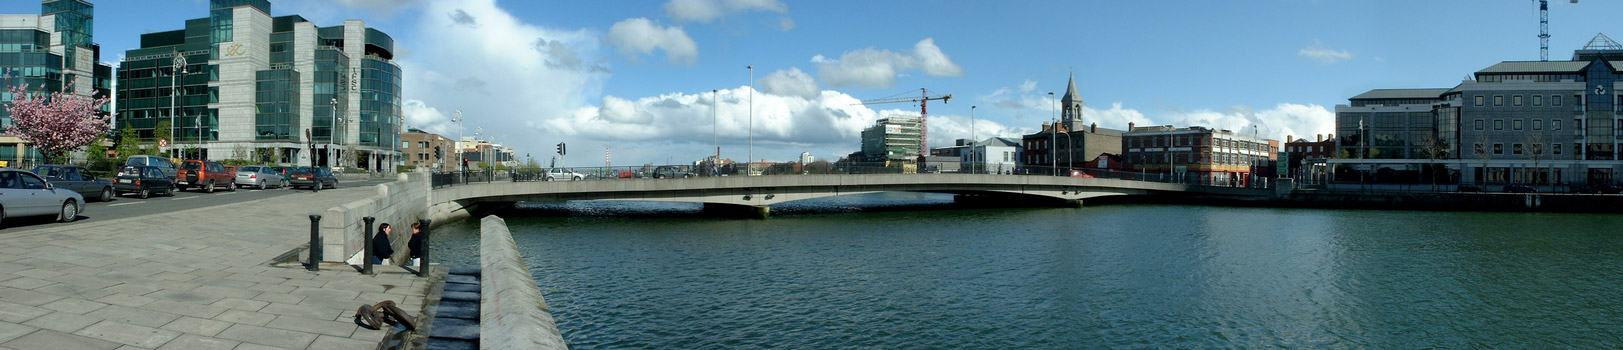 photo by fjp, ifsc, docklands, river liffey, dublin